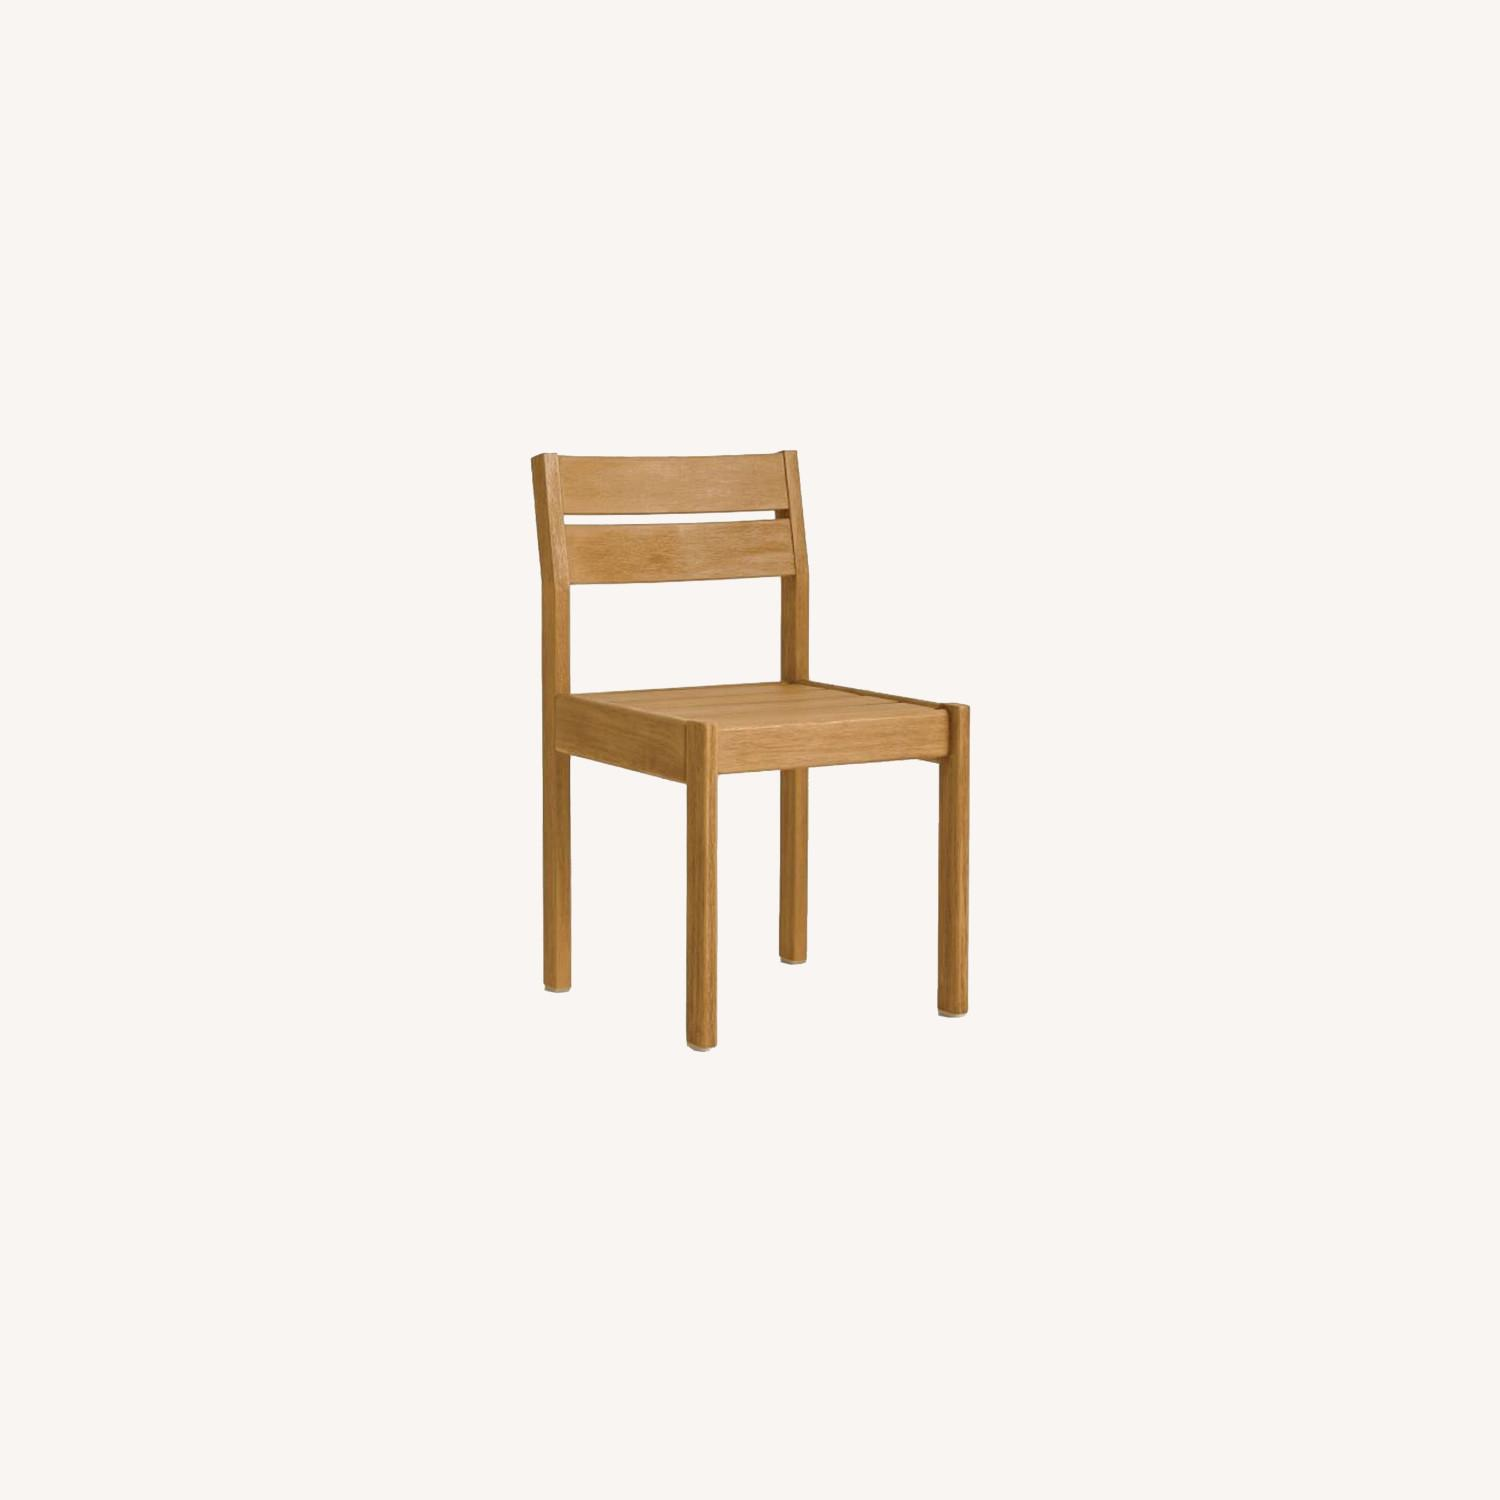 West Elm Playa Outdoor Dining Chair - image-0